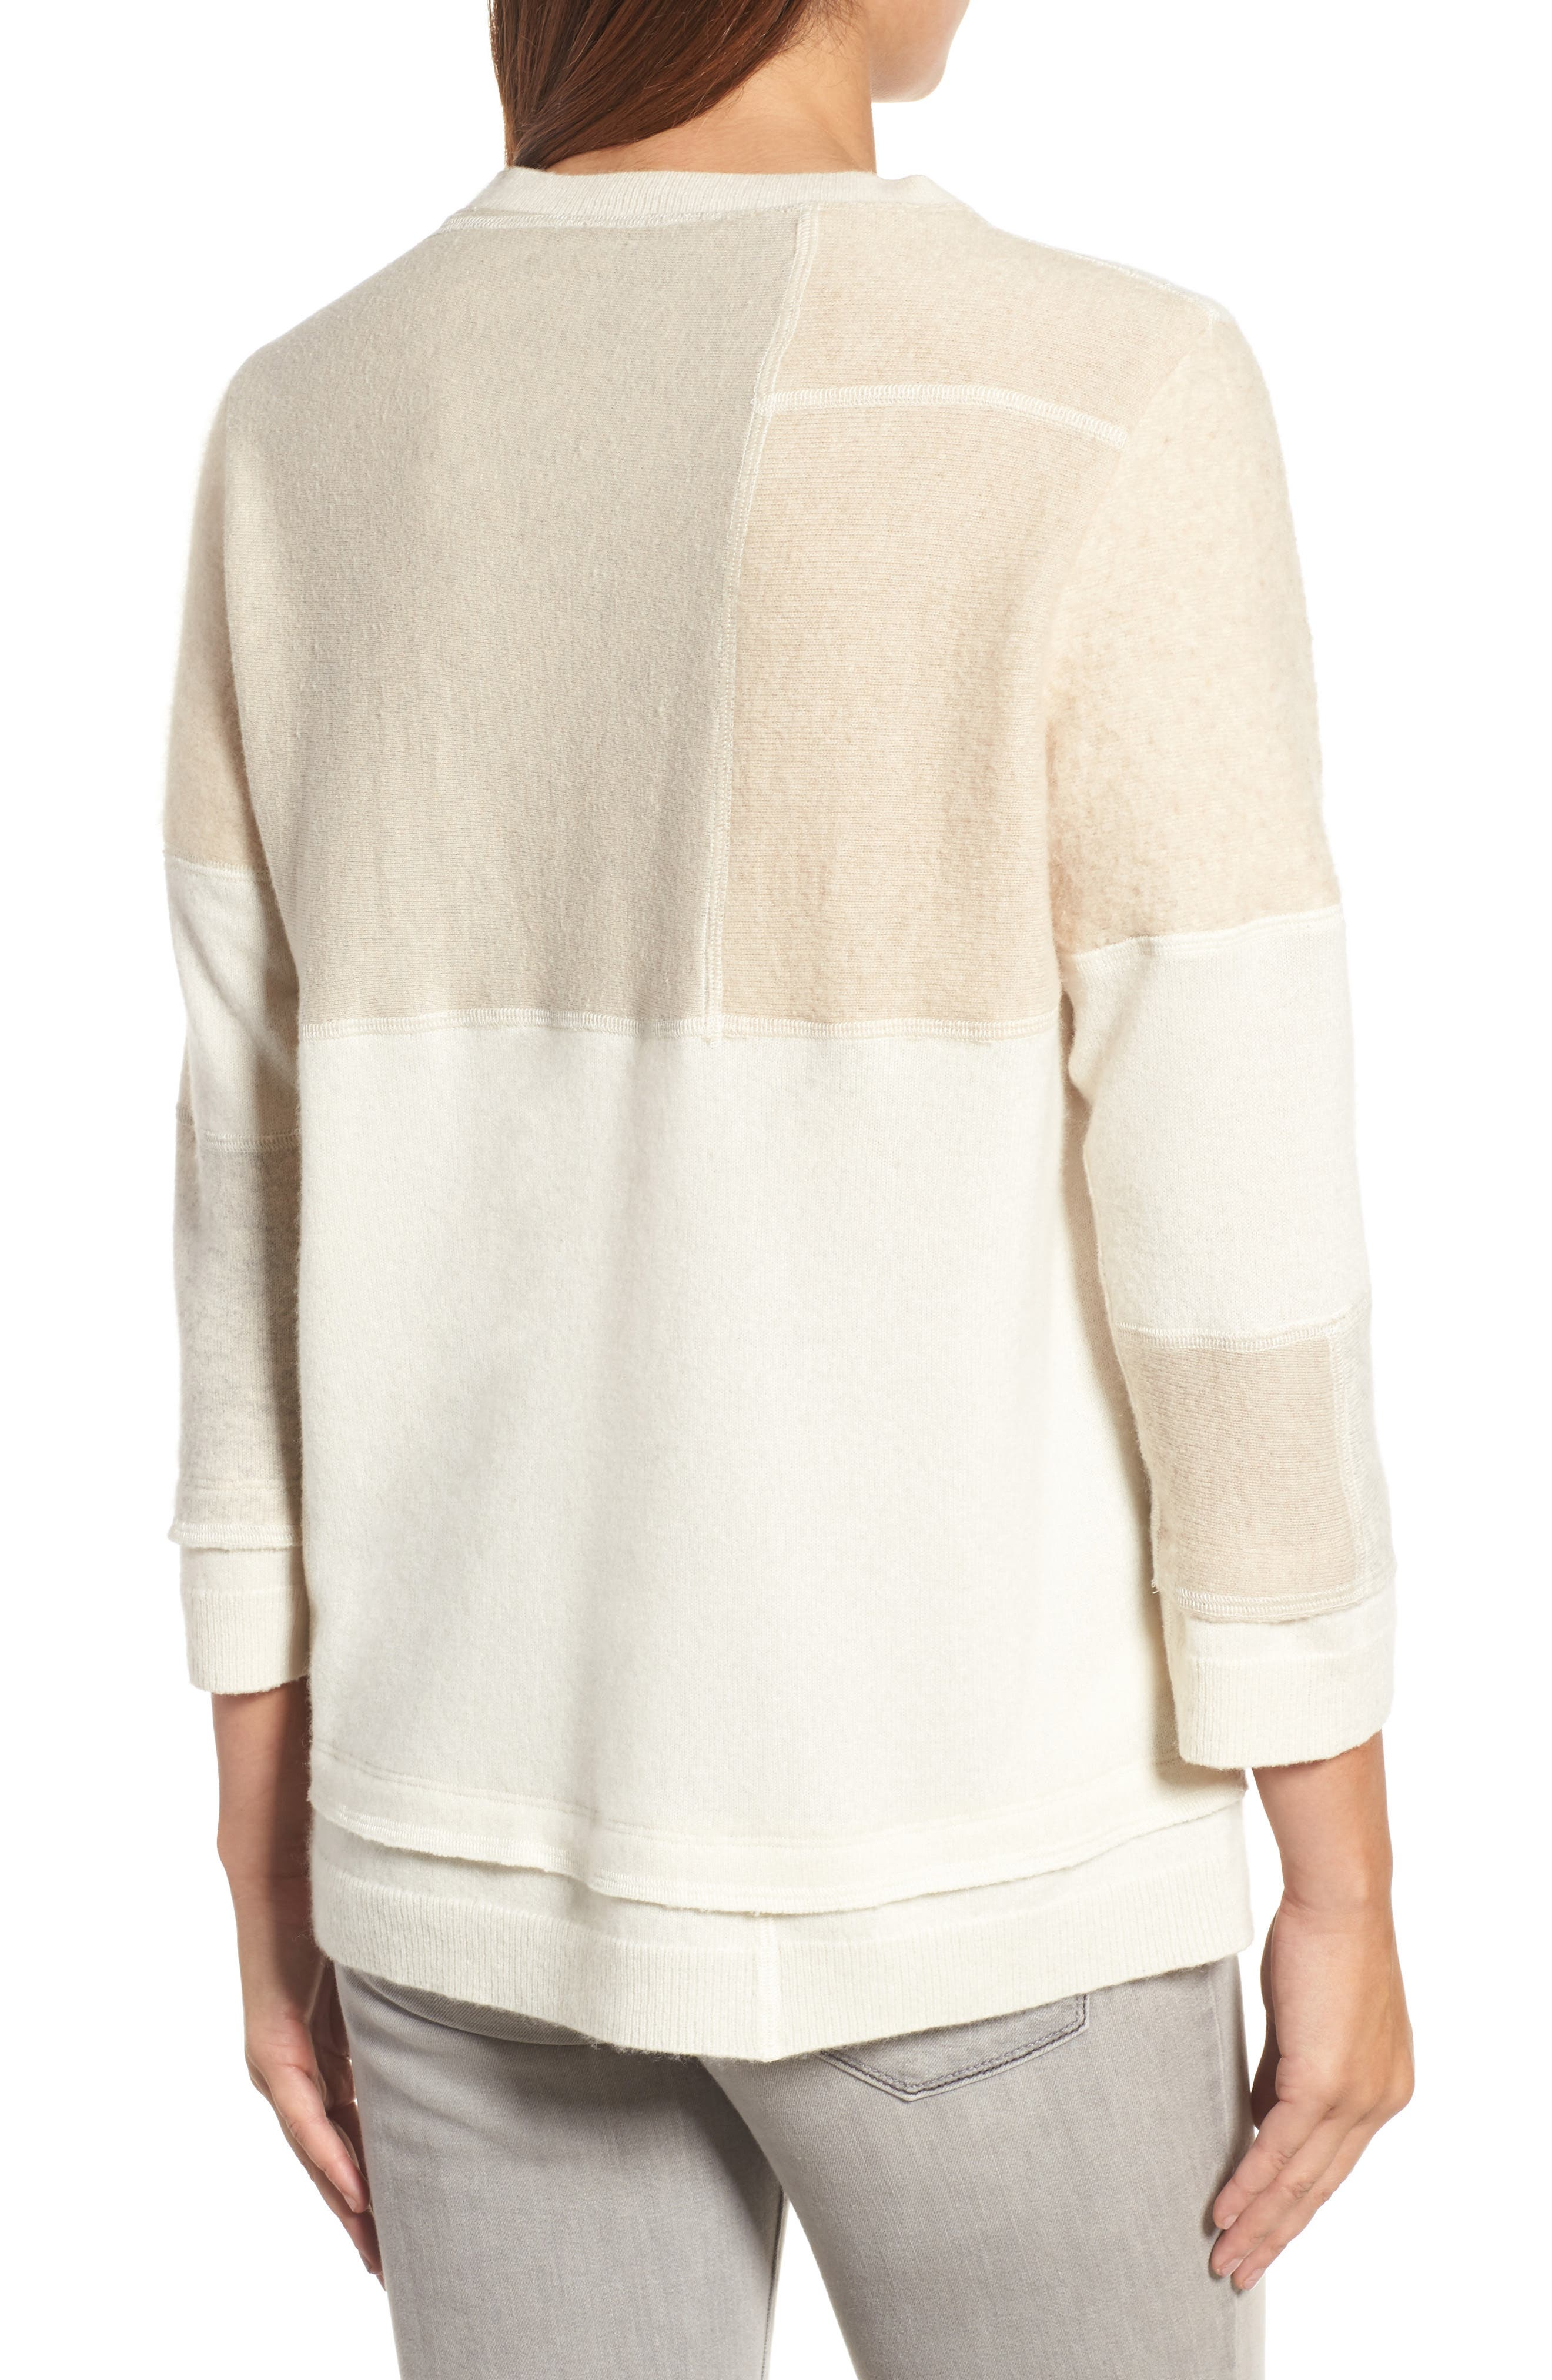 Alternate Image 2  - Eileen Fisher Colorblock Cashmere Sweater (Nordstrom Exclusive)